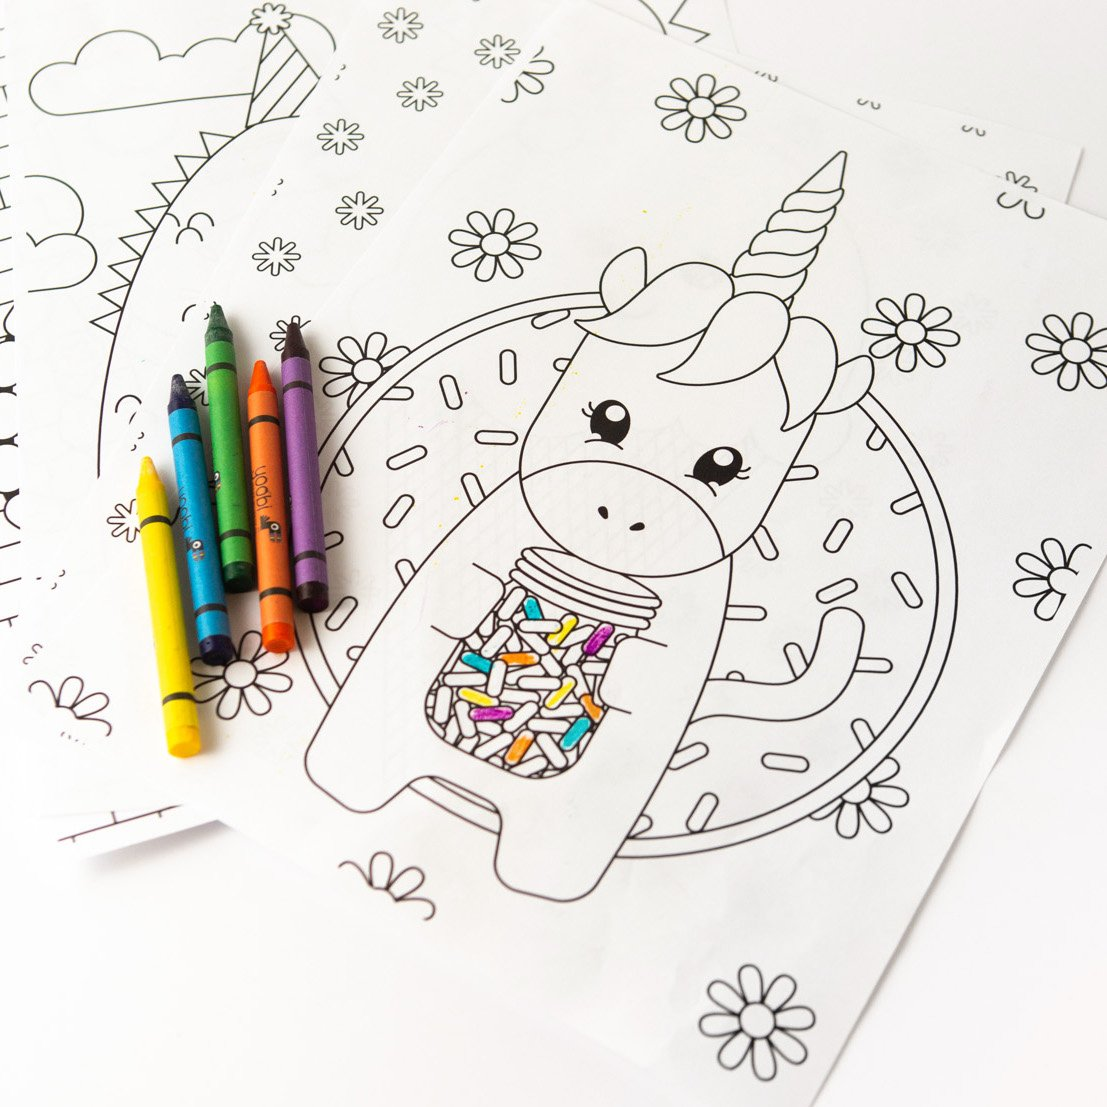 8 FREE Kids Coloring Pages - Design Eat Repeat